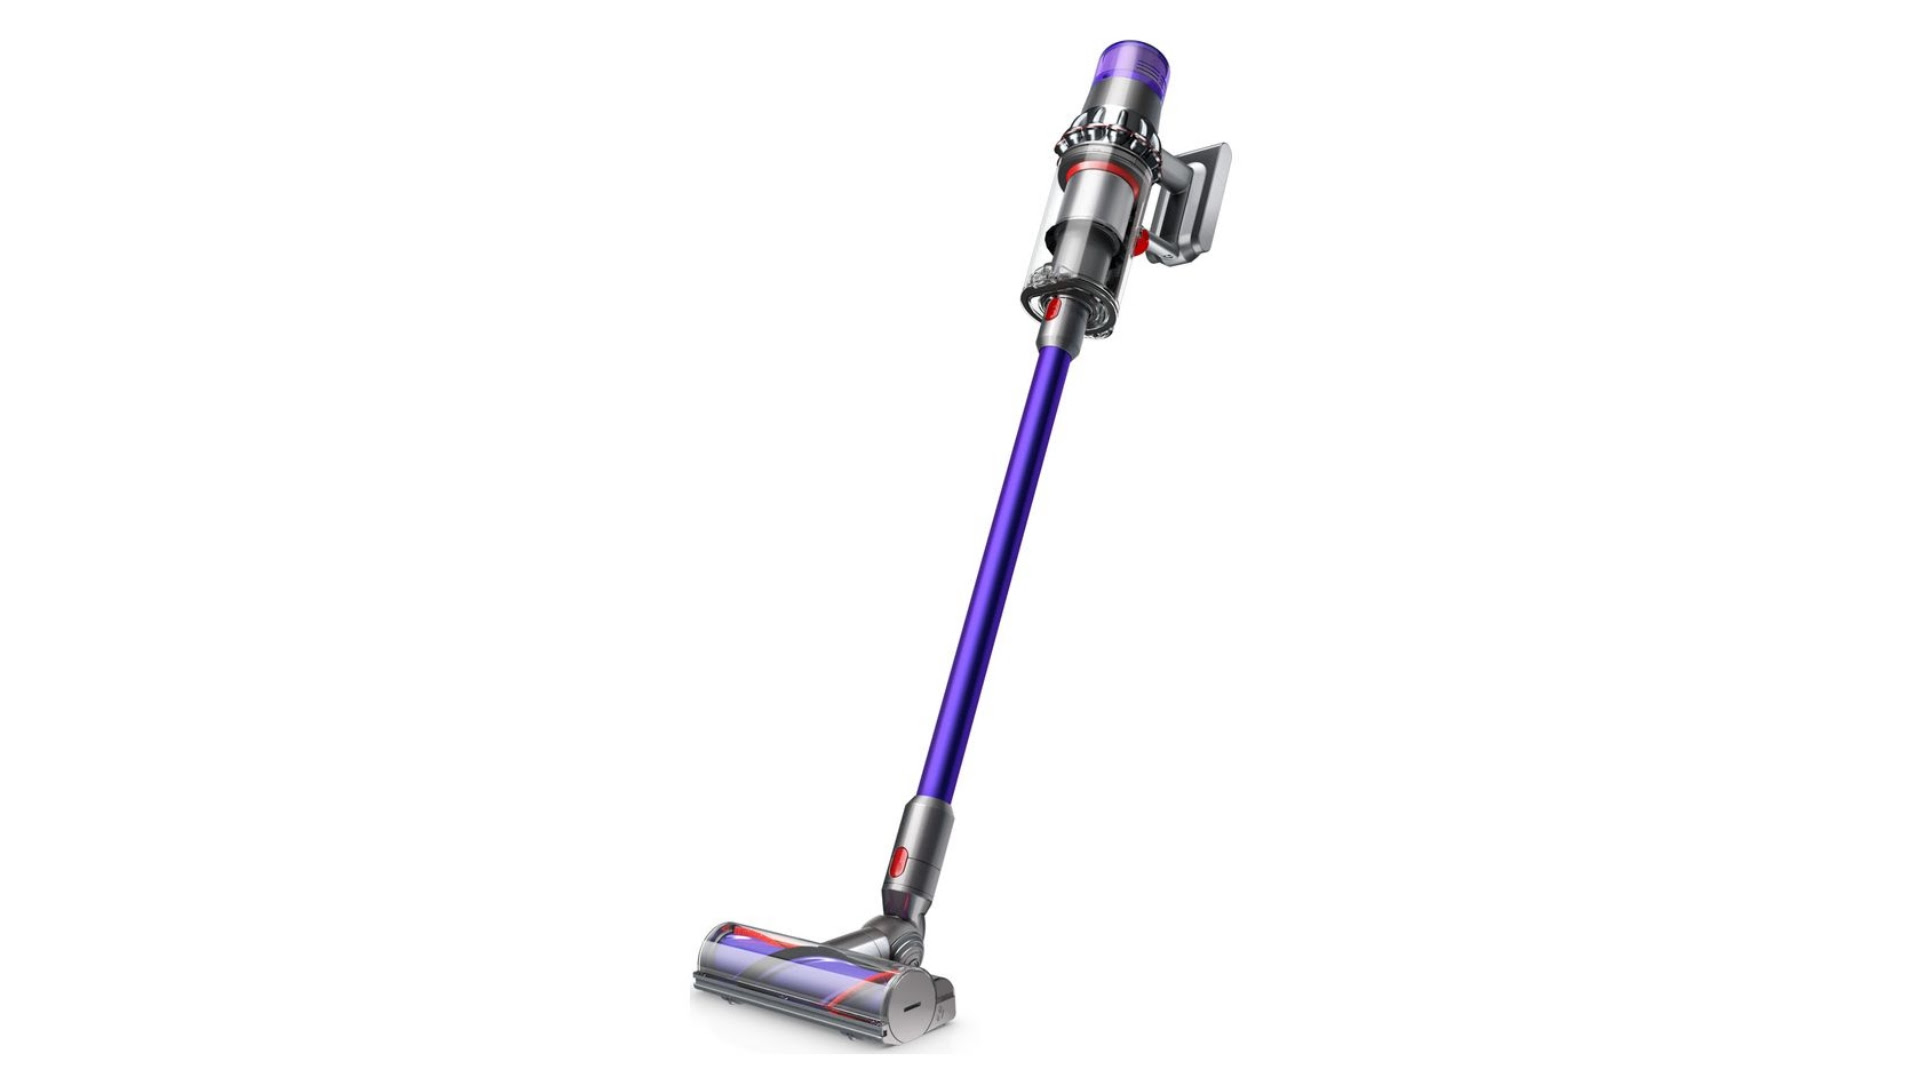 cheap Dyson V11 Animal deals prices sales